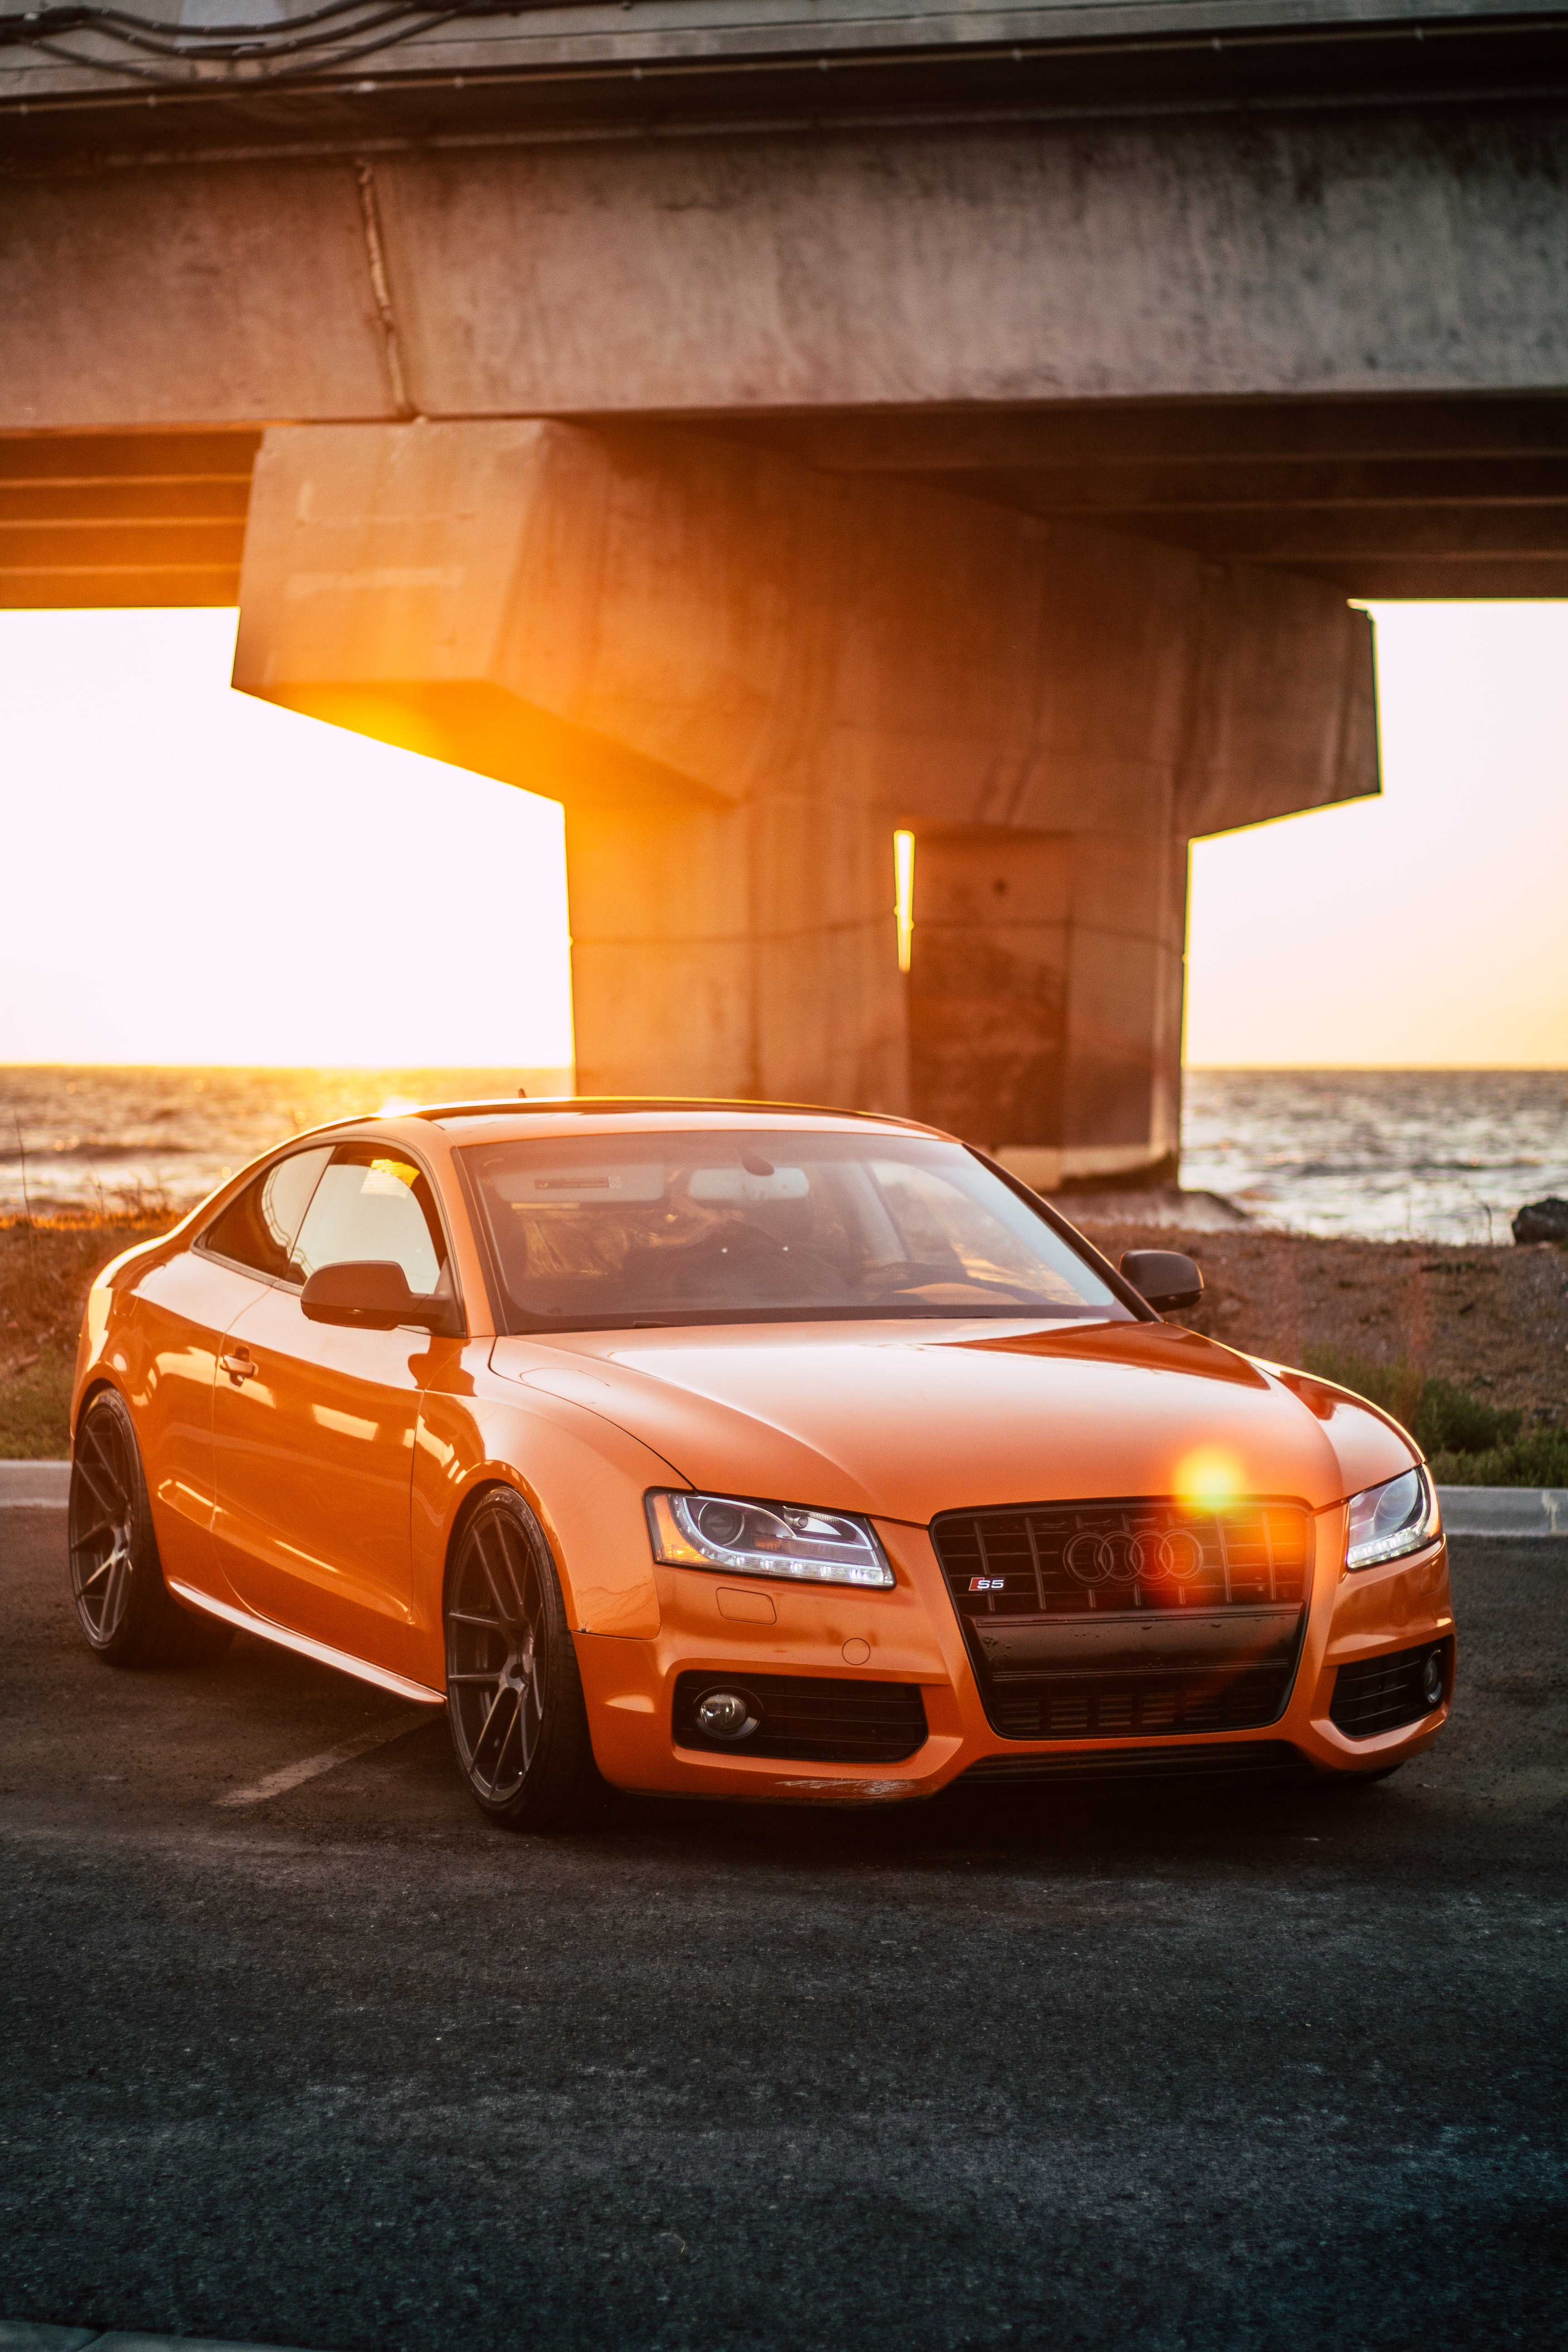 World famous cars photos download